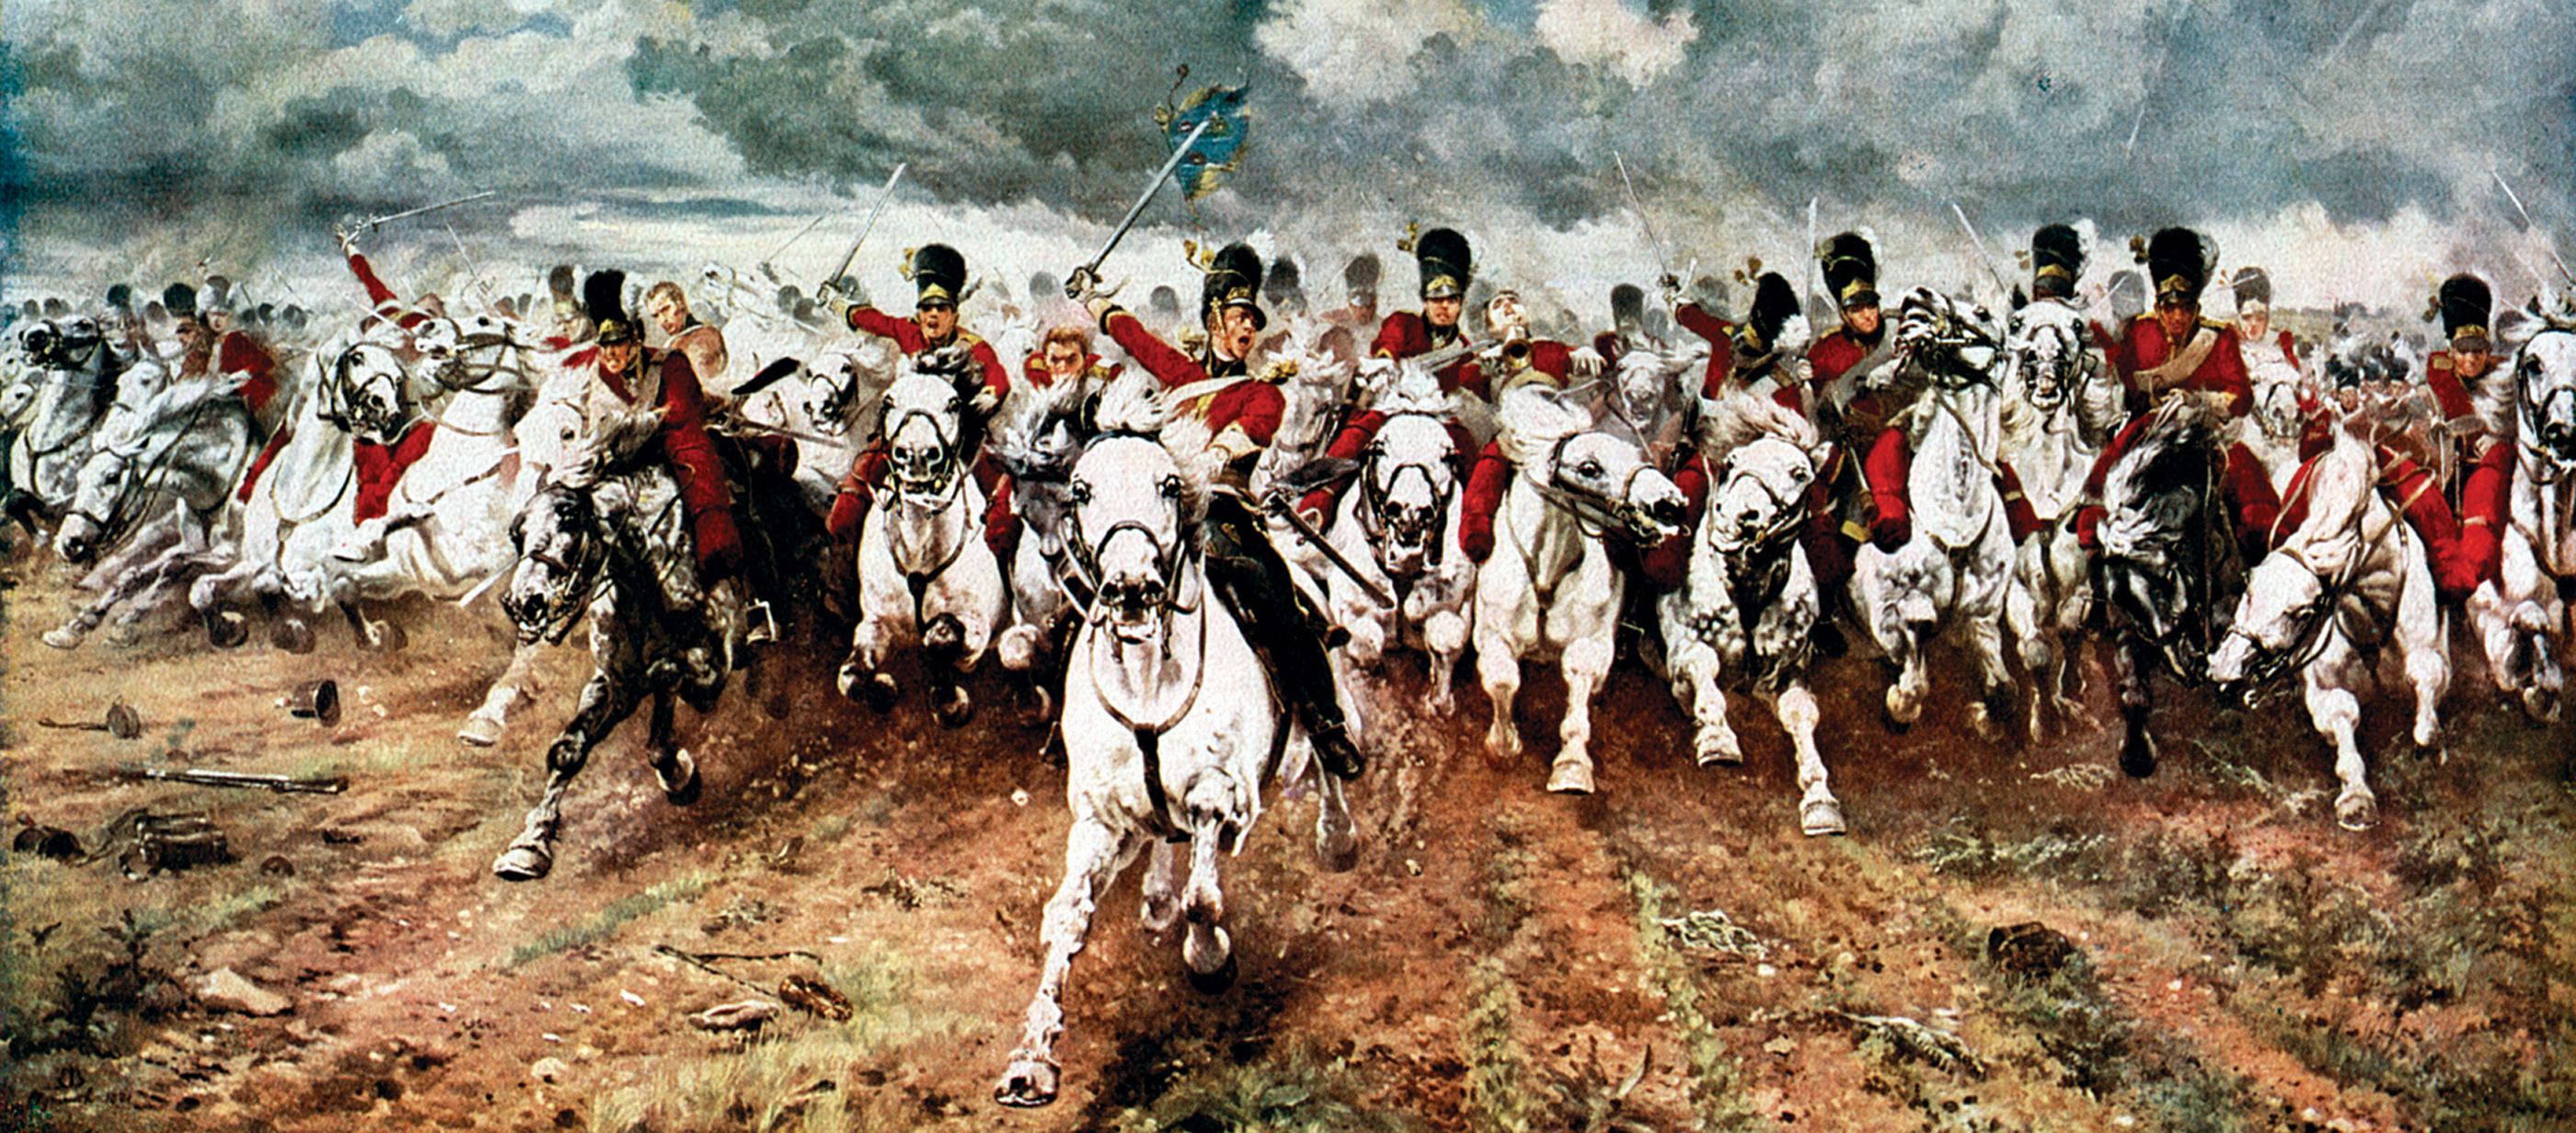 Scotland For Ever'; The Charge of the Scots Greys at Waterloo, June 18, 1815, by Elizabeth Butler, 1881. Leeds Art Gallery, Leeds, West Yorkshire, England.